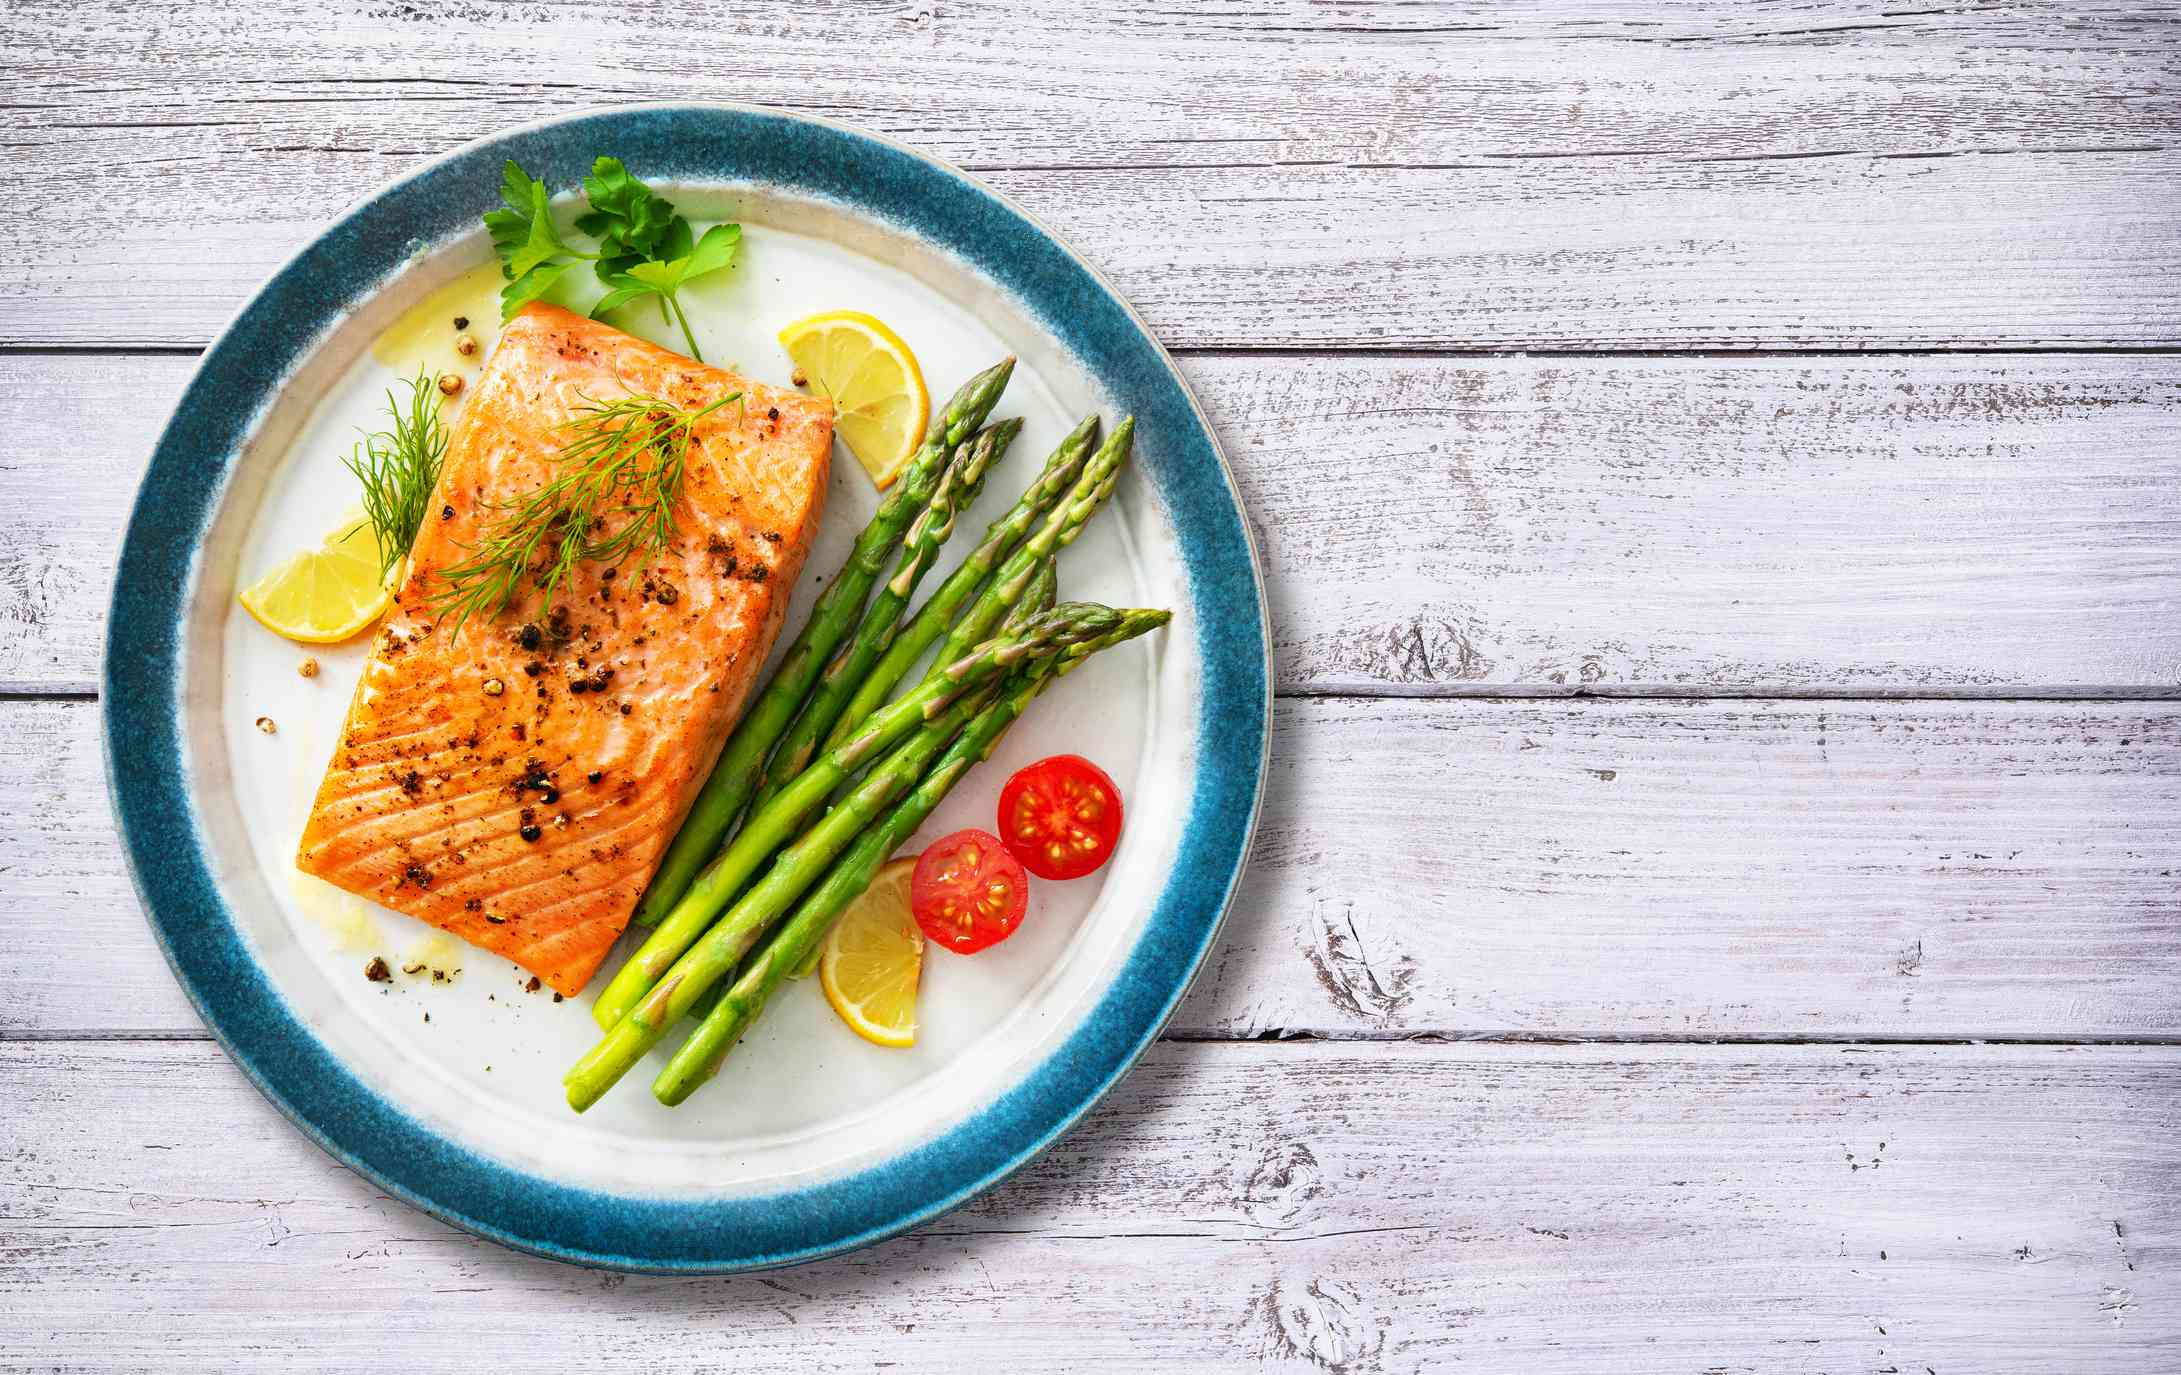 Grilled salmon steak garnished with green asparagus, lemon and tomatoes